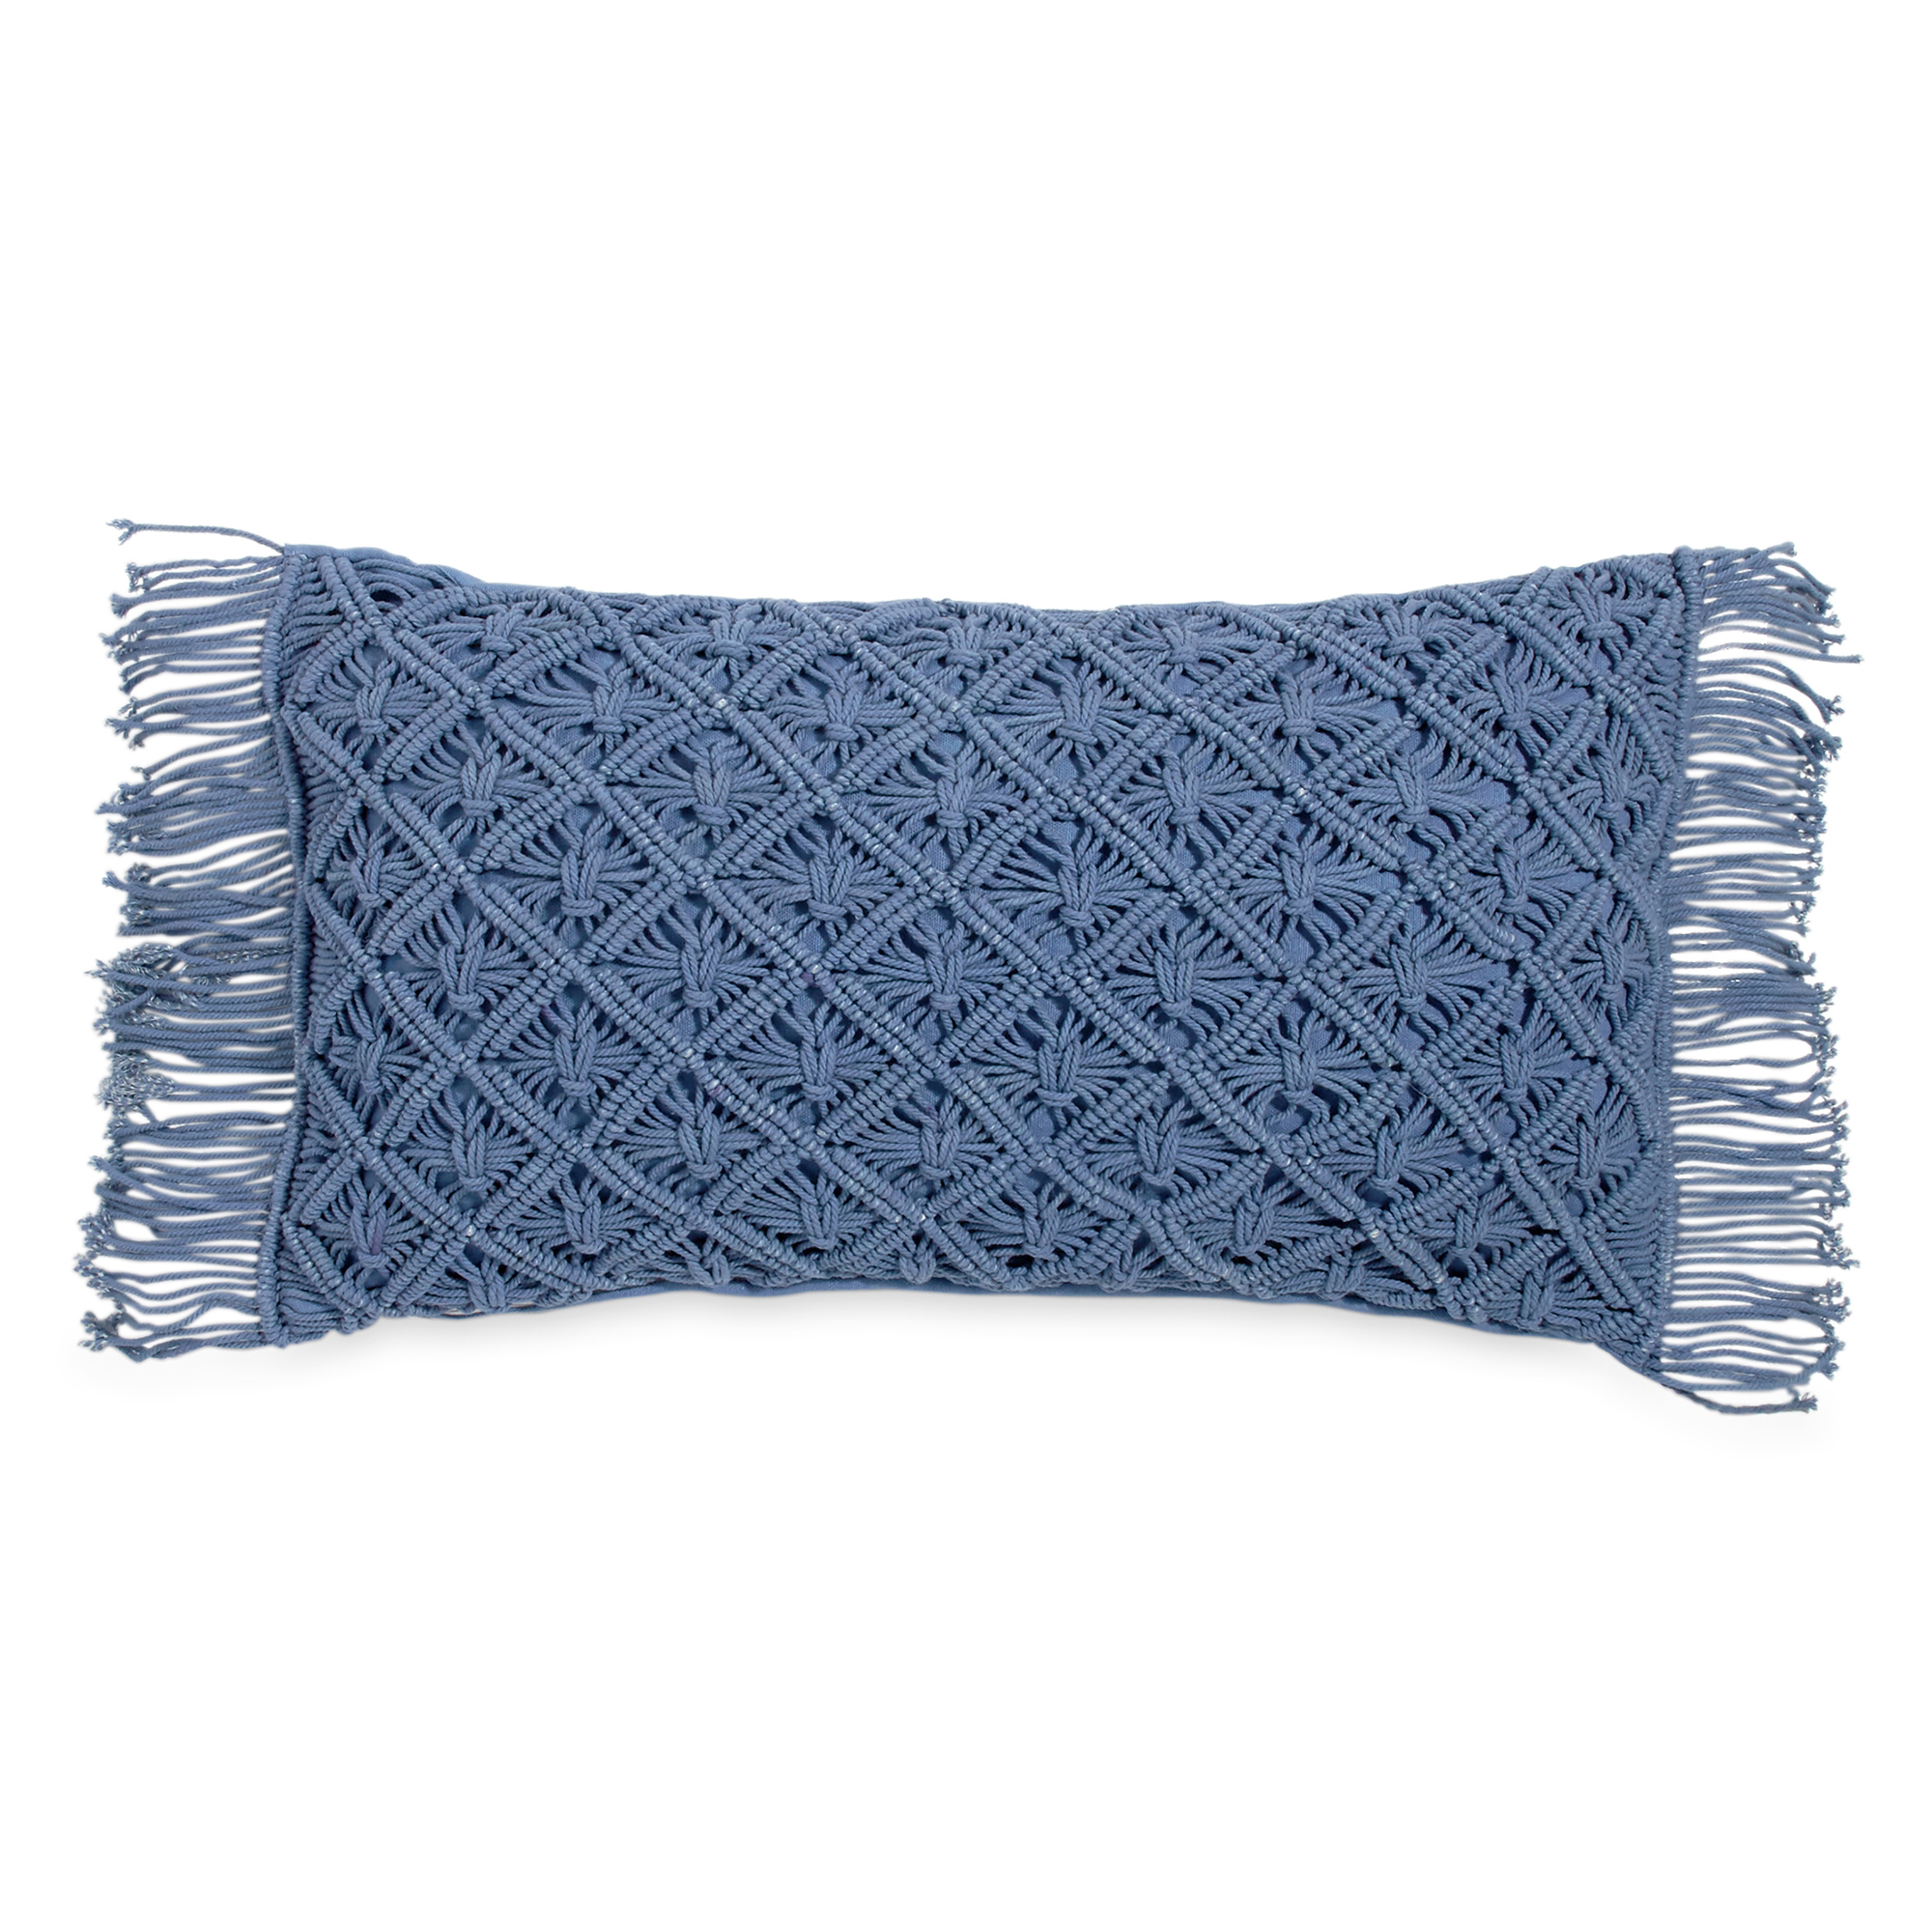 The Pioneer Woman Macrame Dec 12x20 Decorative Pillow by CHF Industries, Inc.